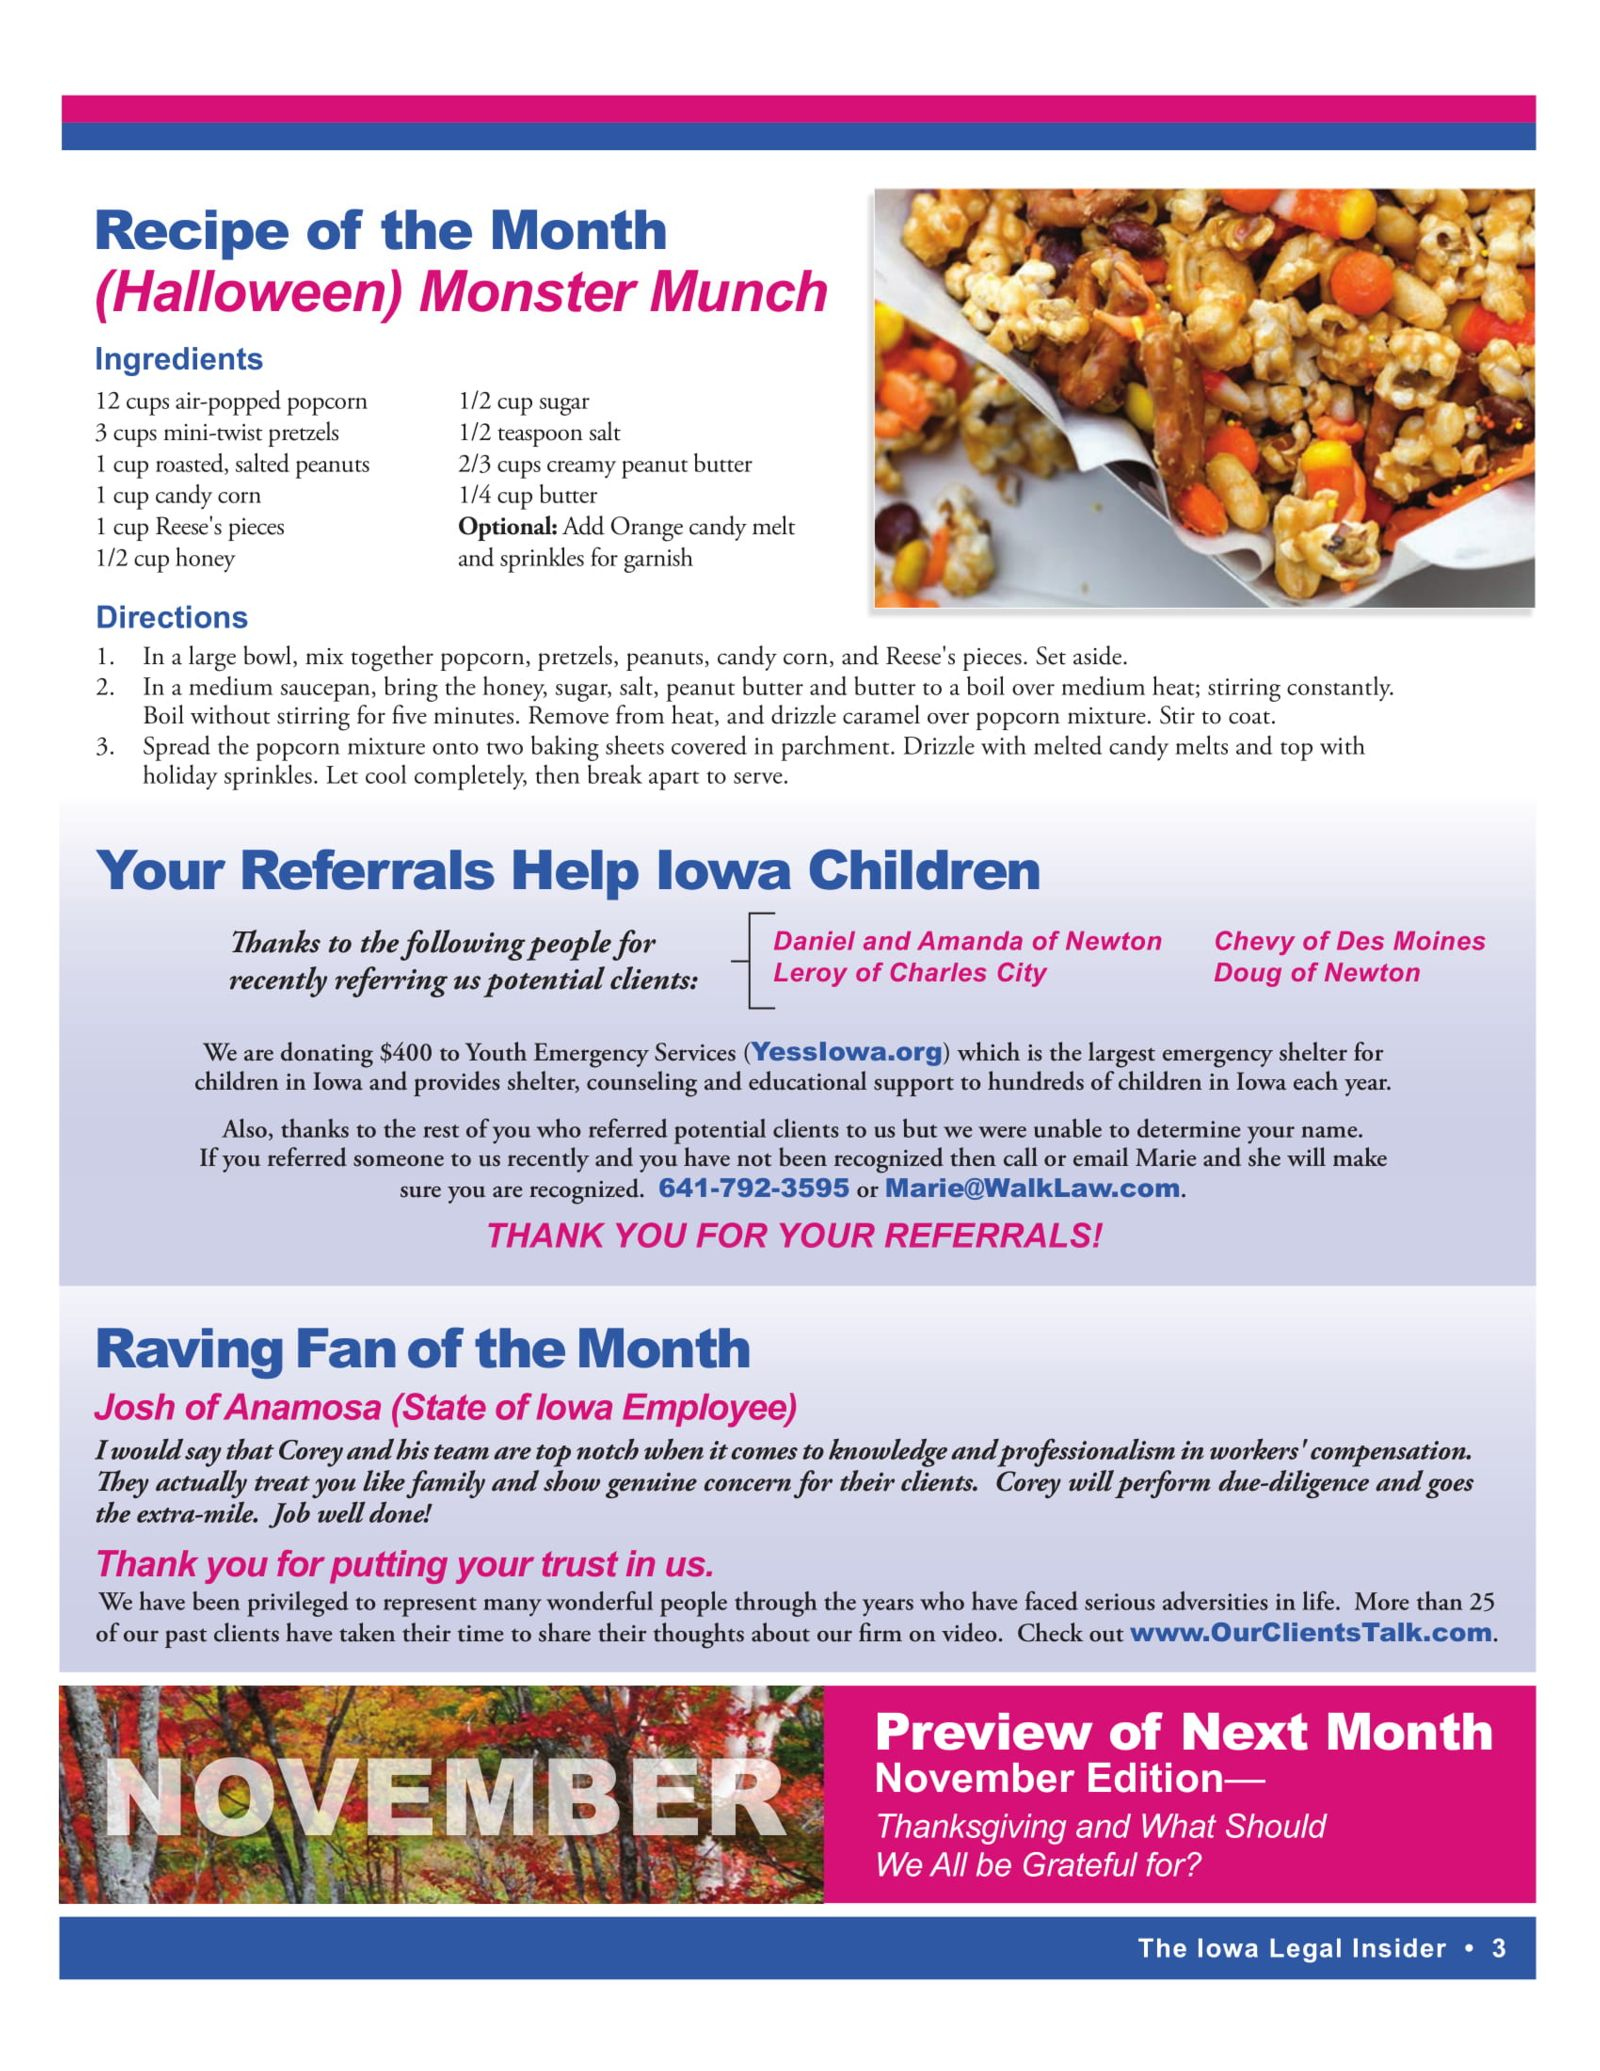 Recipe of the Month Halloween